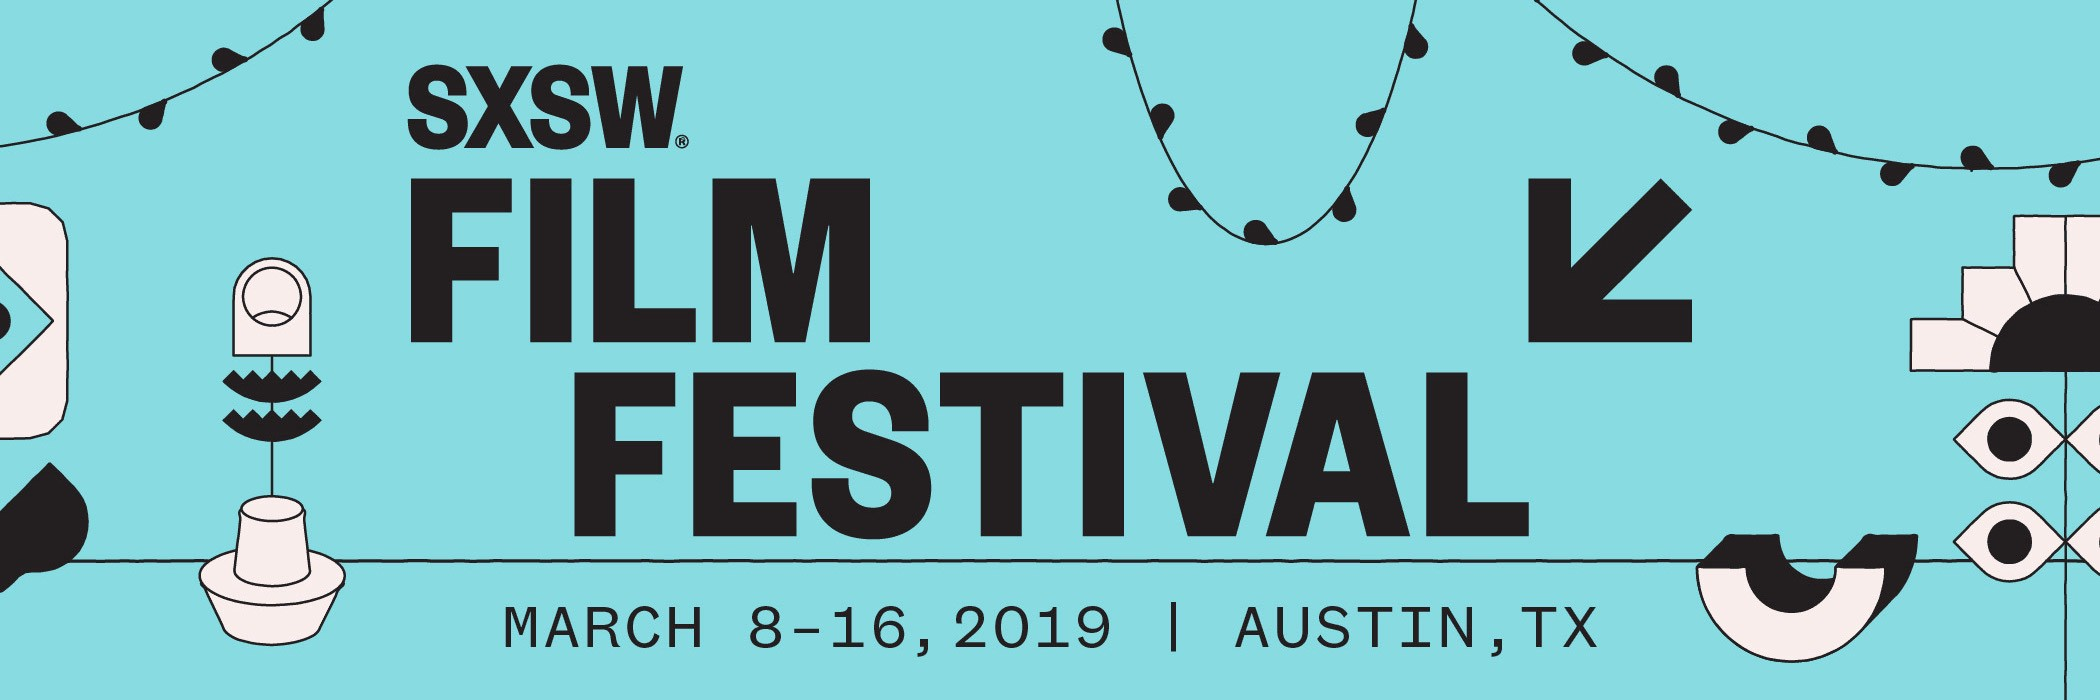 f488ea5c75 SXSW 2019  Film Lineup and Cinapse Coverage – Cinapse